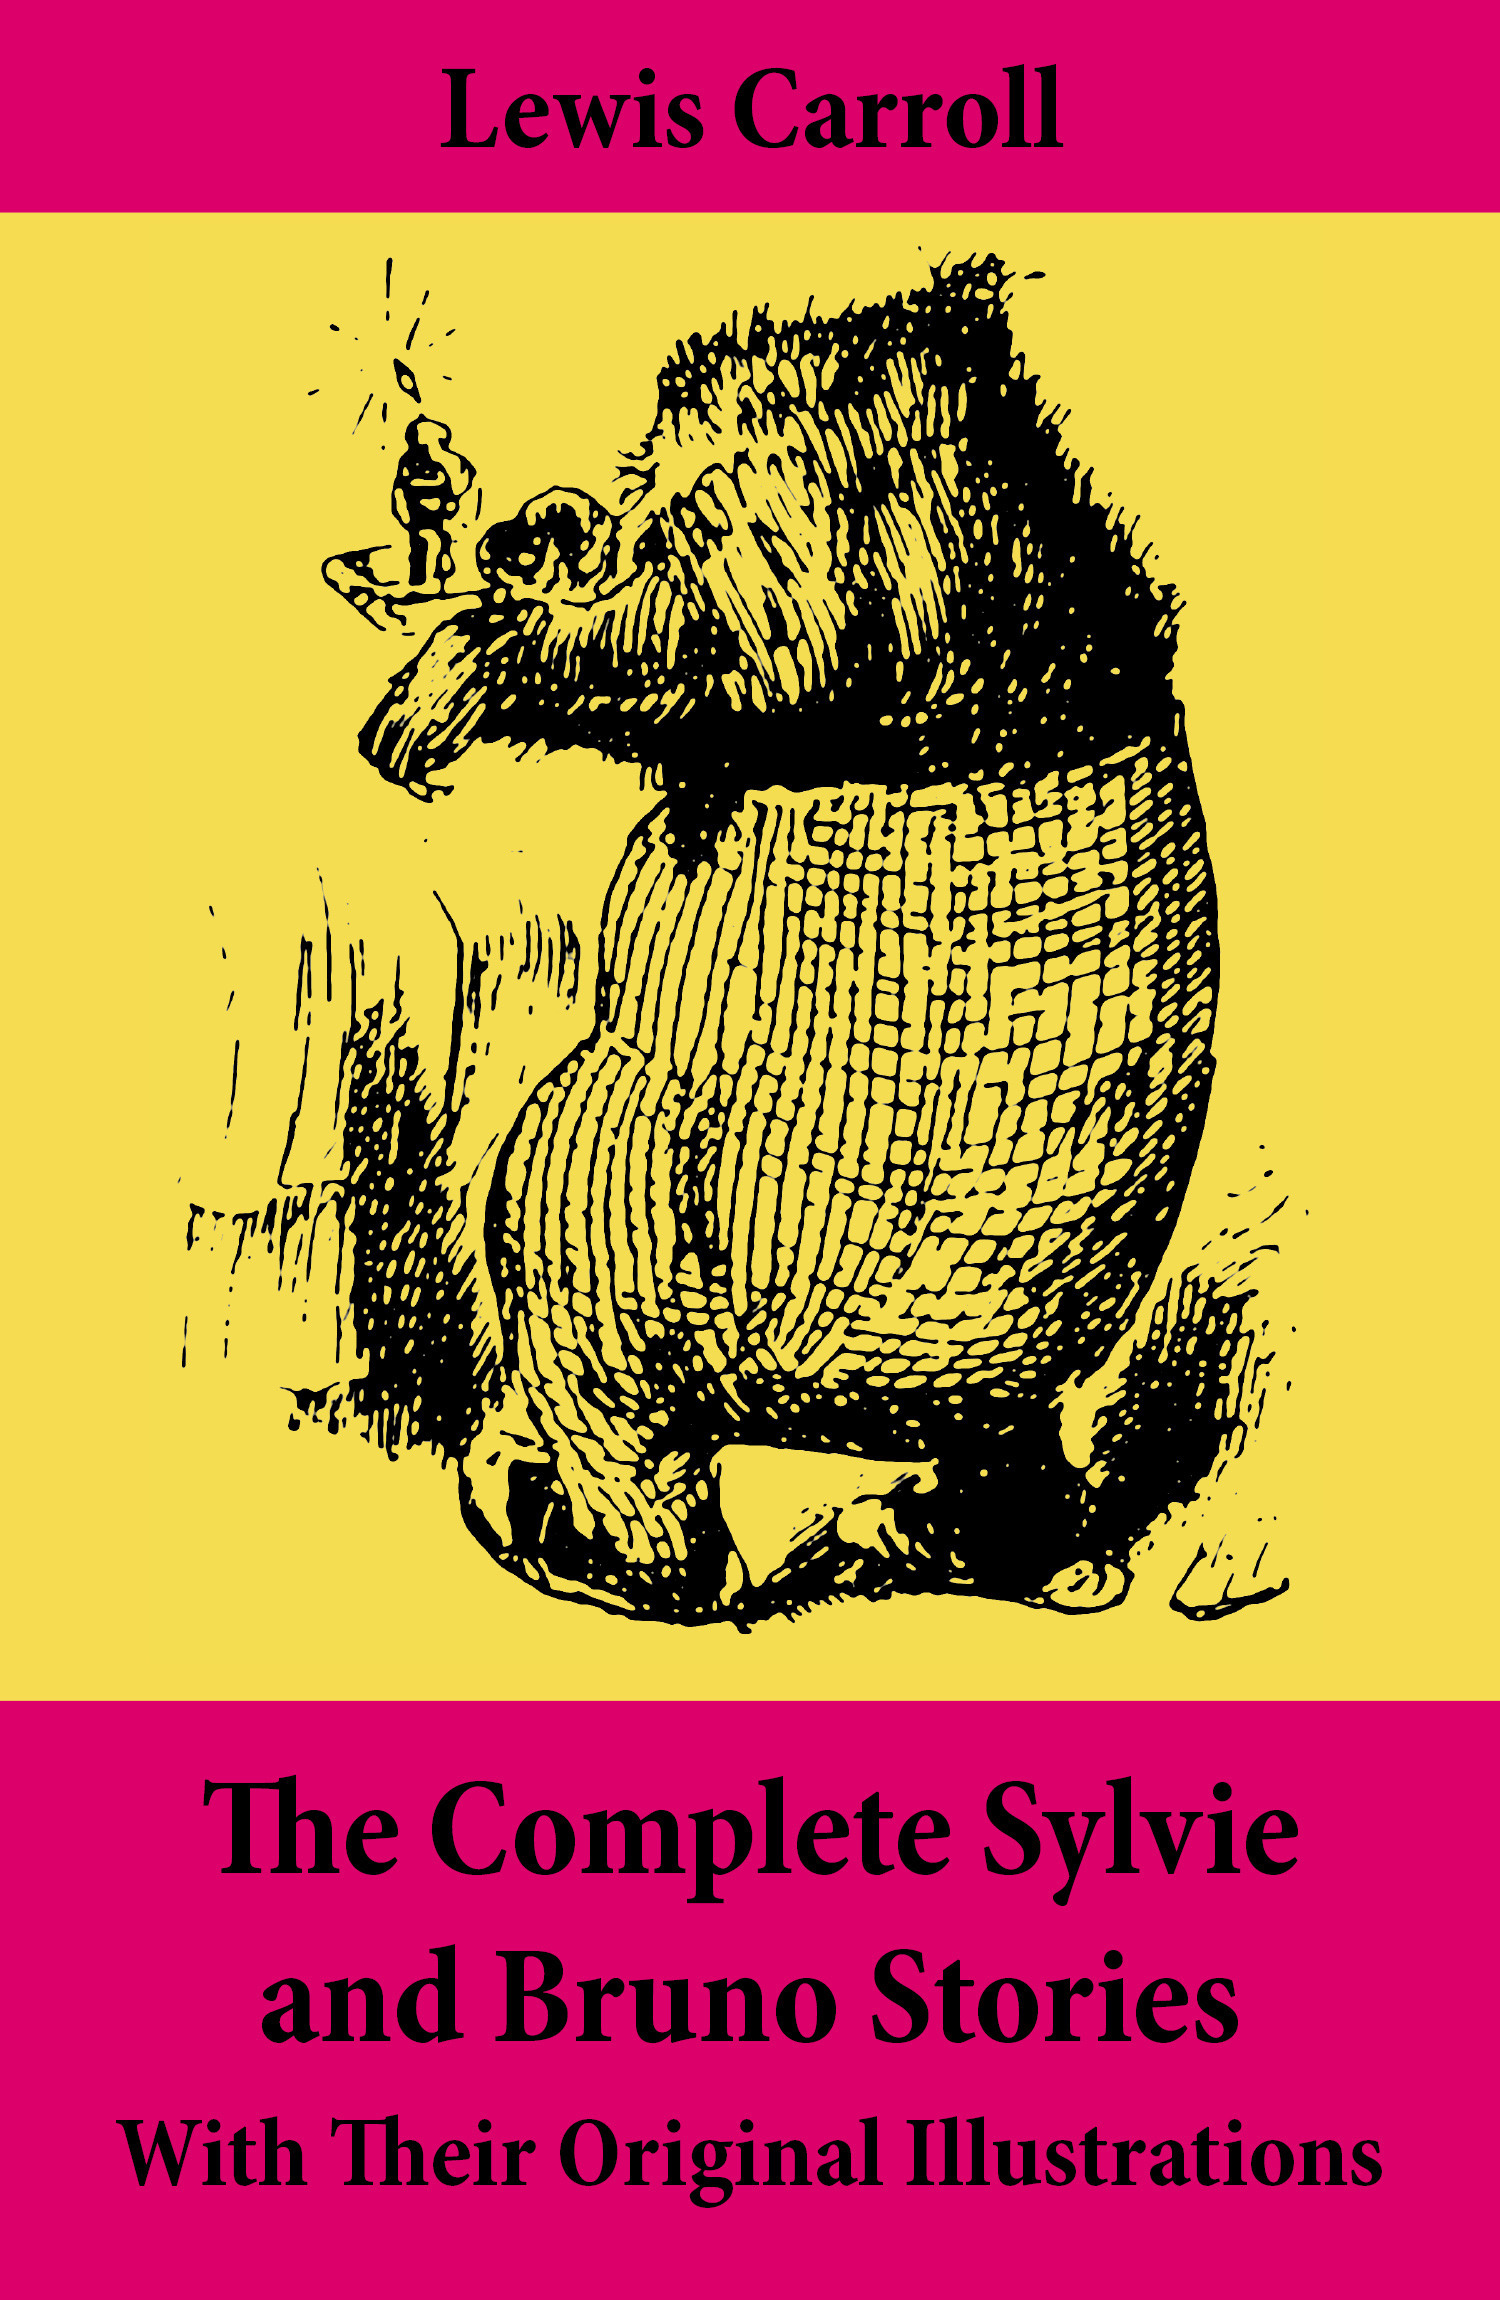 The Complete Sylvie and Bruno Stories With Their Original Illustrations